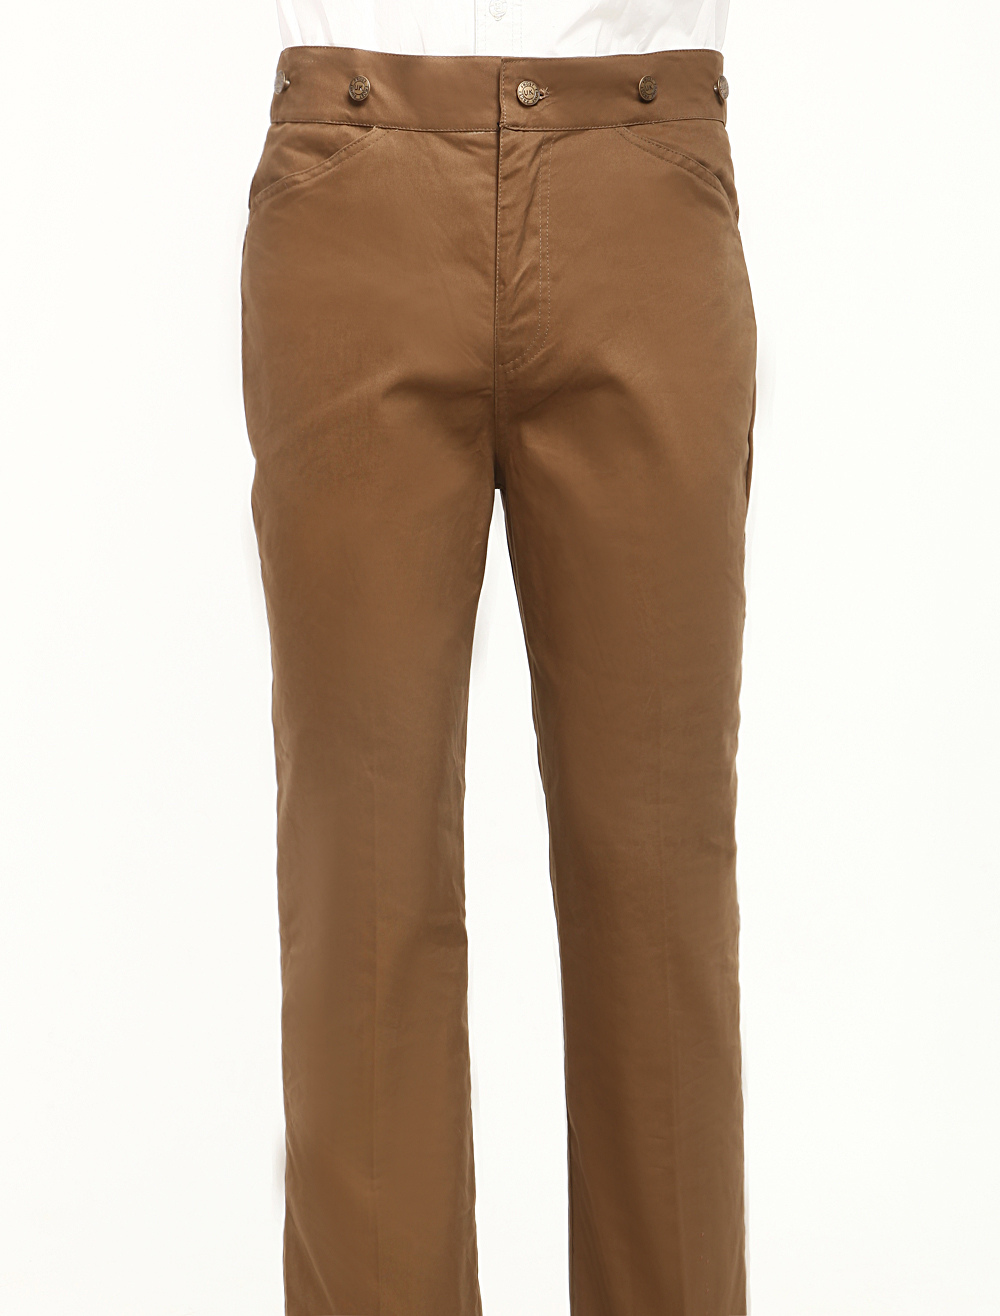 Modern Nut-brown Cotton Mens Steampunk Trousers $49.99 AT vintagedancer.com